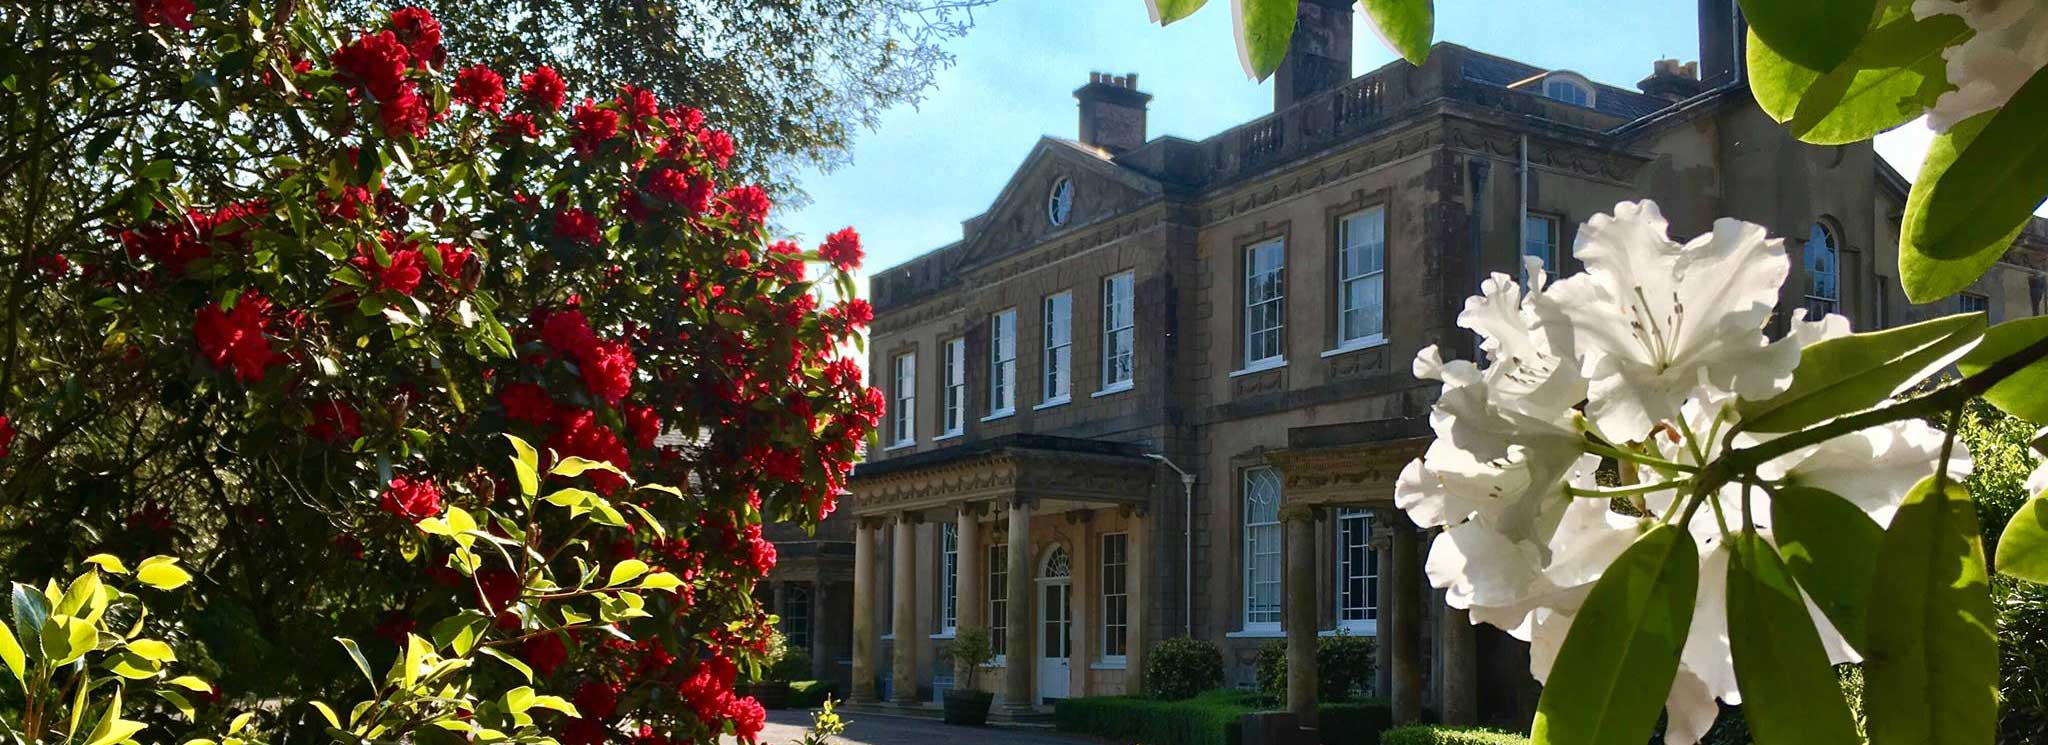 Beautiful Upton House and grounds in the sunshine